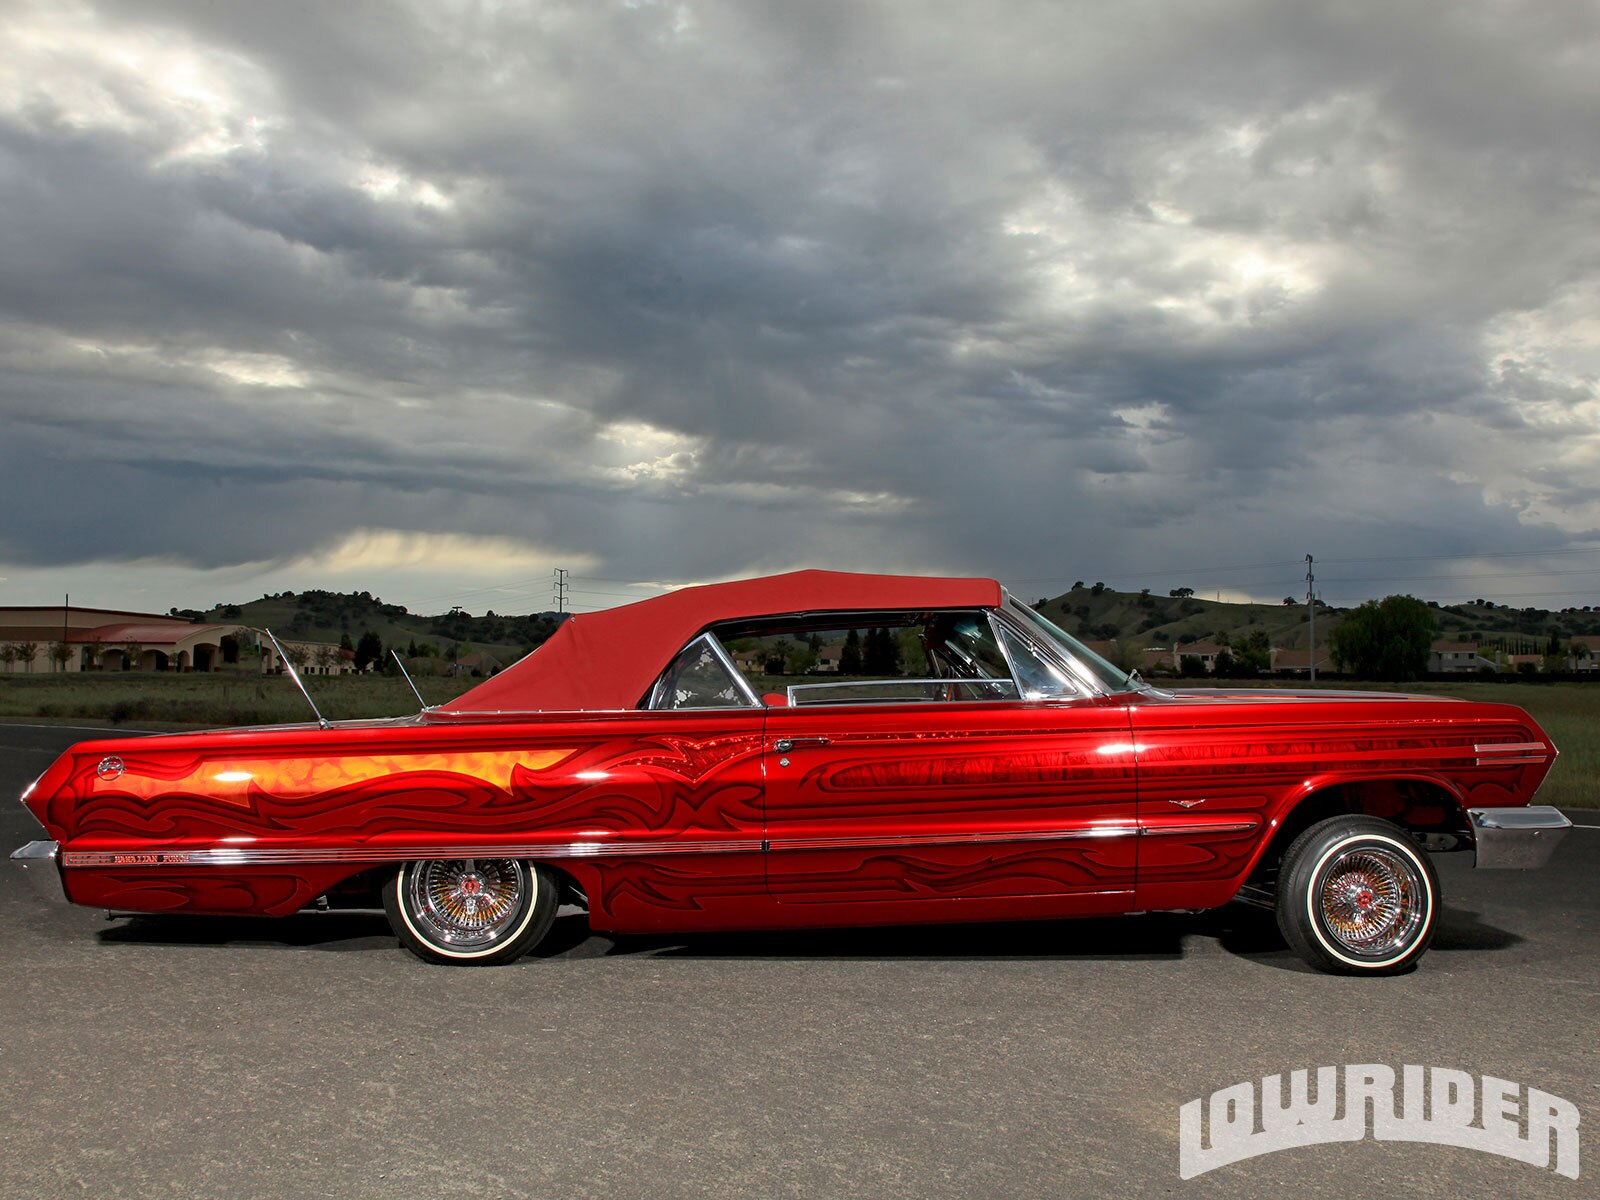 1963-chevrolet-impala-right-side-view2